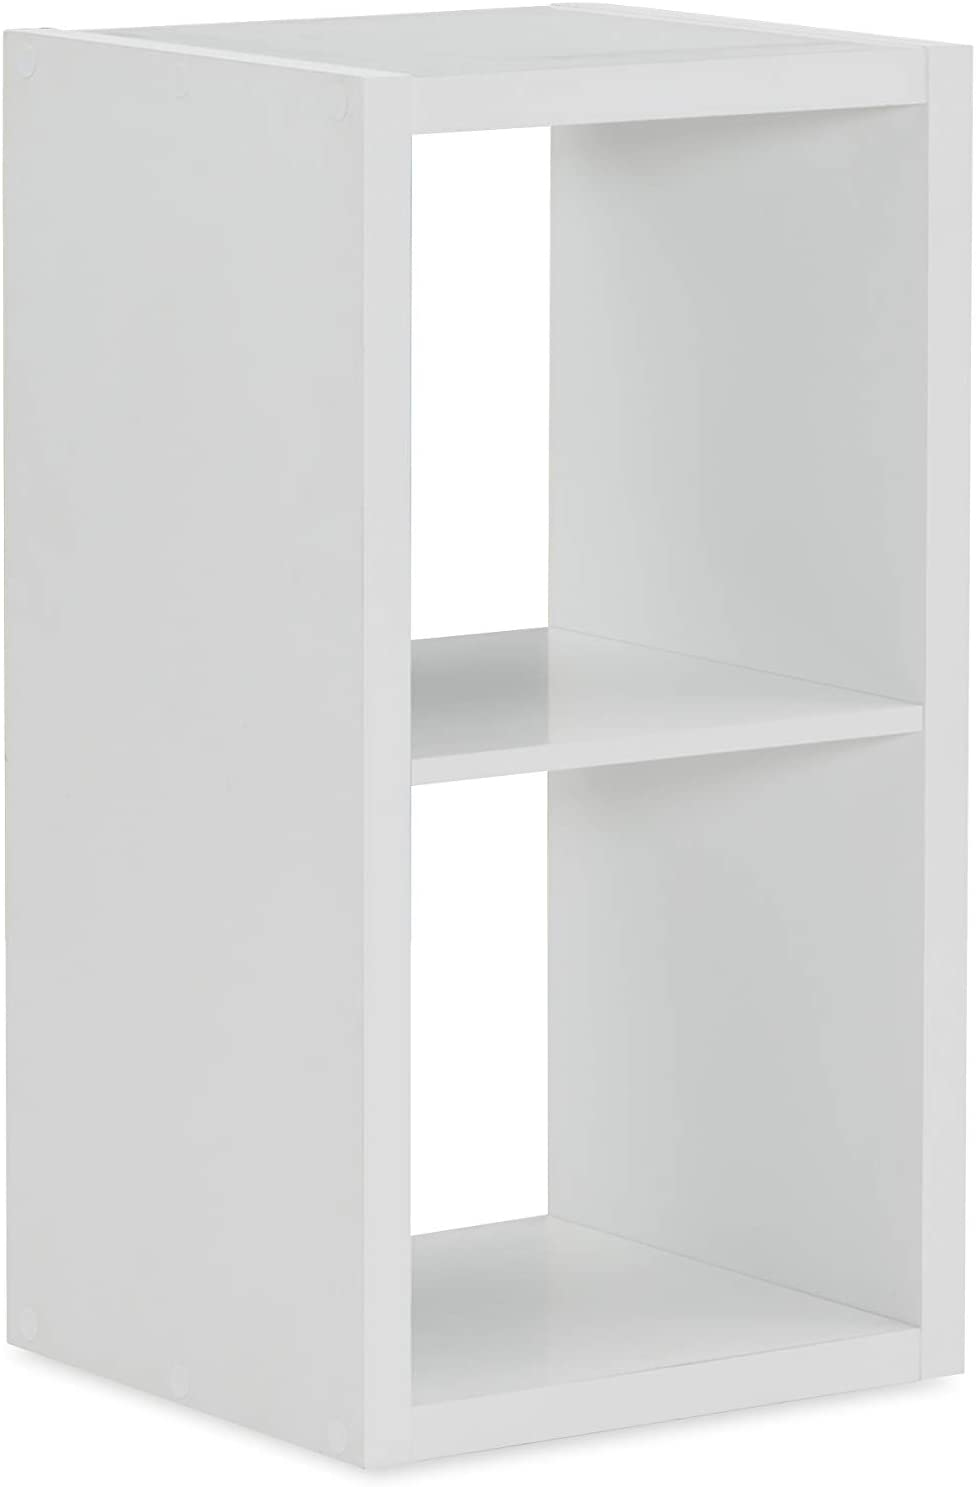 Linon Home Max 77% OFF Decor Dawes 2 Cabinet White Cubby free shipping Storage